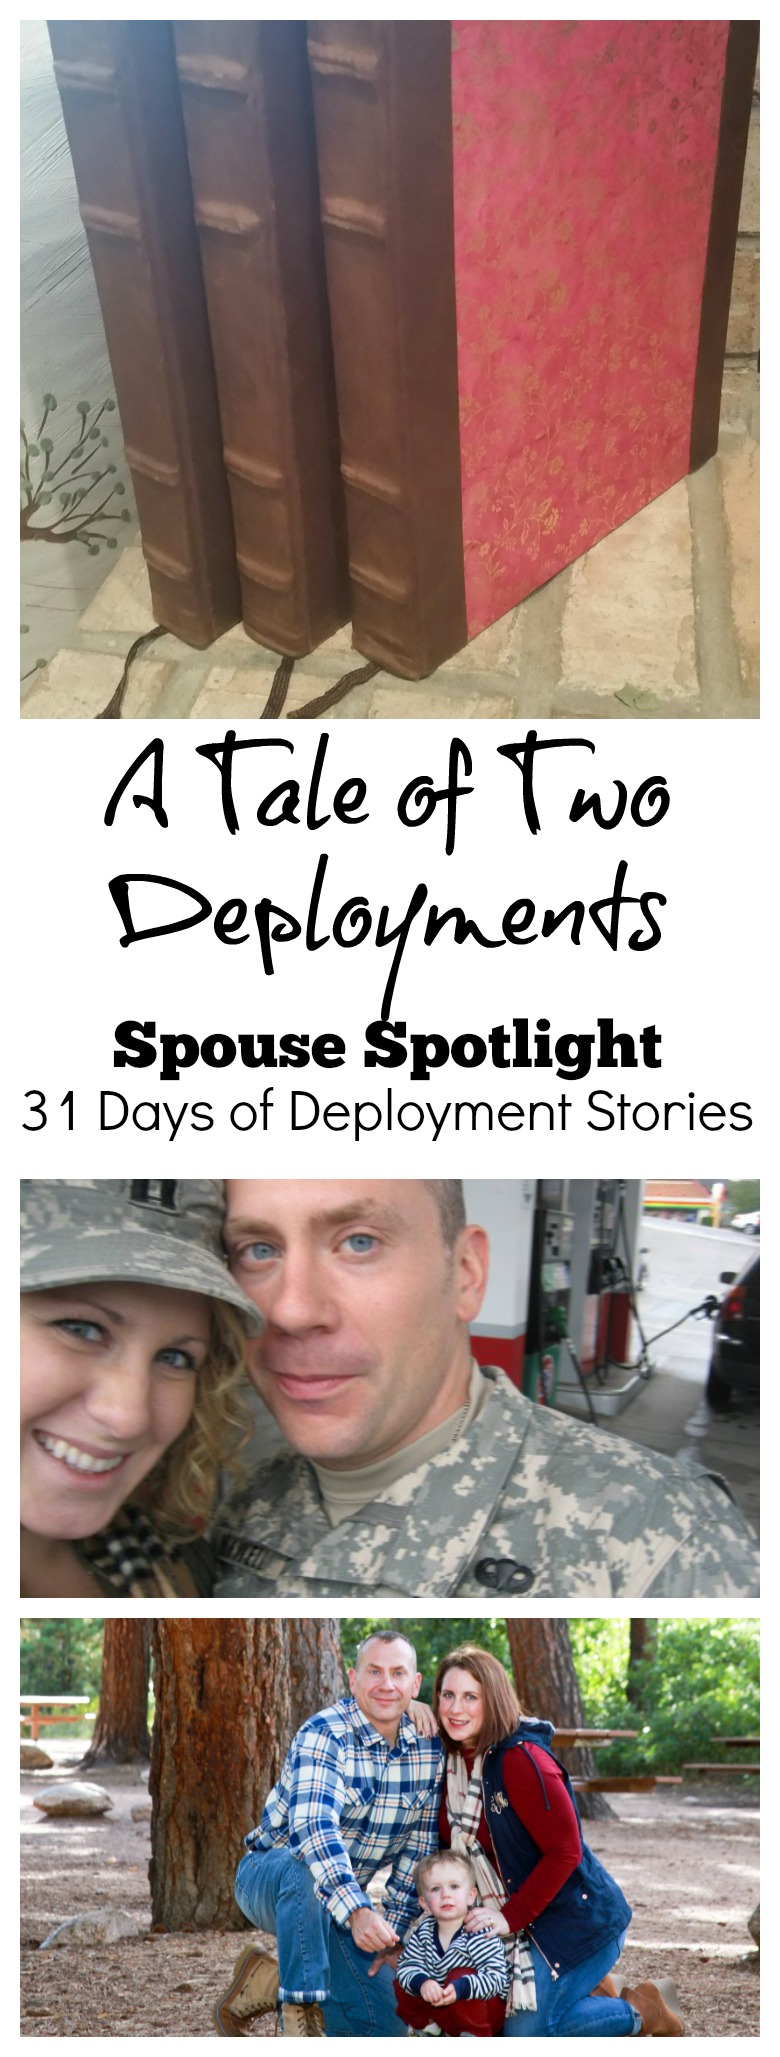 Sharing deployment stories means not forgetting those left behind. Today is the first Spouse Spotlight for my 31 Day Deployment Series. Christine is sharing two different deployment experiences as life changes. #write31days #deploymentstories #militaryspouse #thisisdeployment